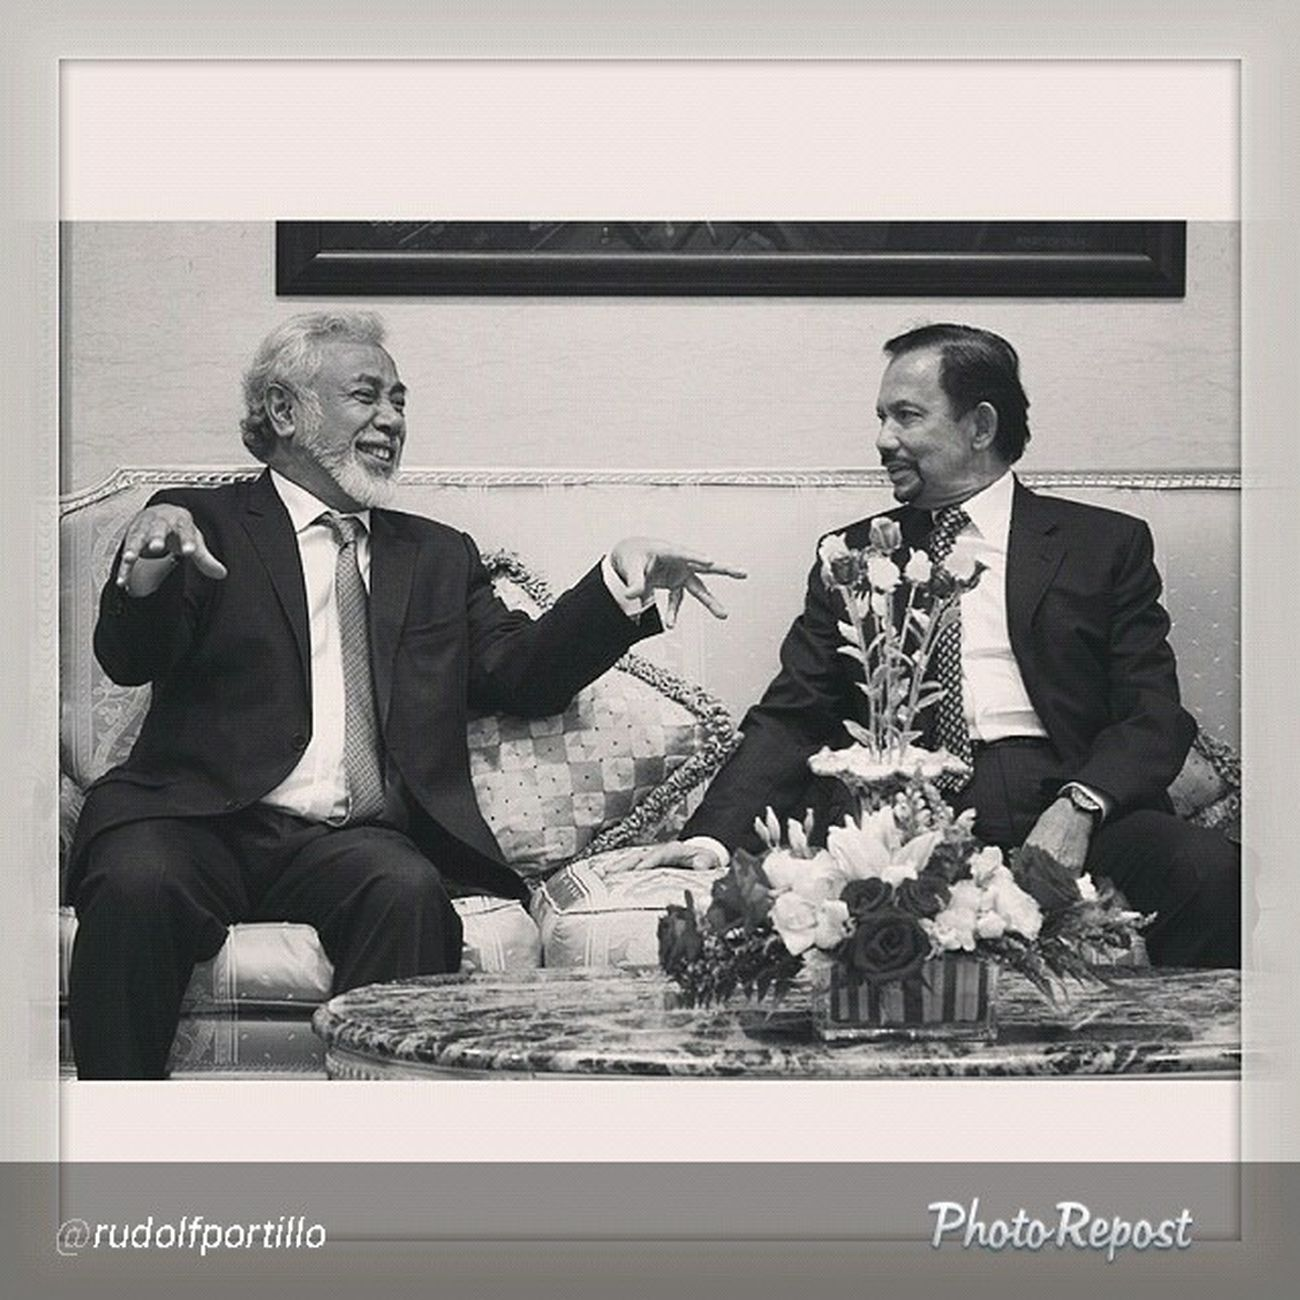 "Superb photography as usual By @rudolfportillo ""Instasize @thebruneitimes XananaGusmao TIMORLESTE Prime Minister gestures during the meeting with Hismajesty Sultan Haji Hassanal Bolkiah at IstanaNuruliman brunei"" via @PhotoRepost_app DecisiveMoment"